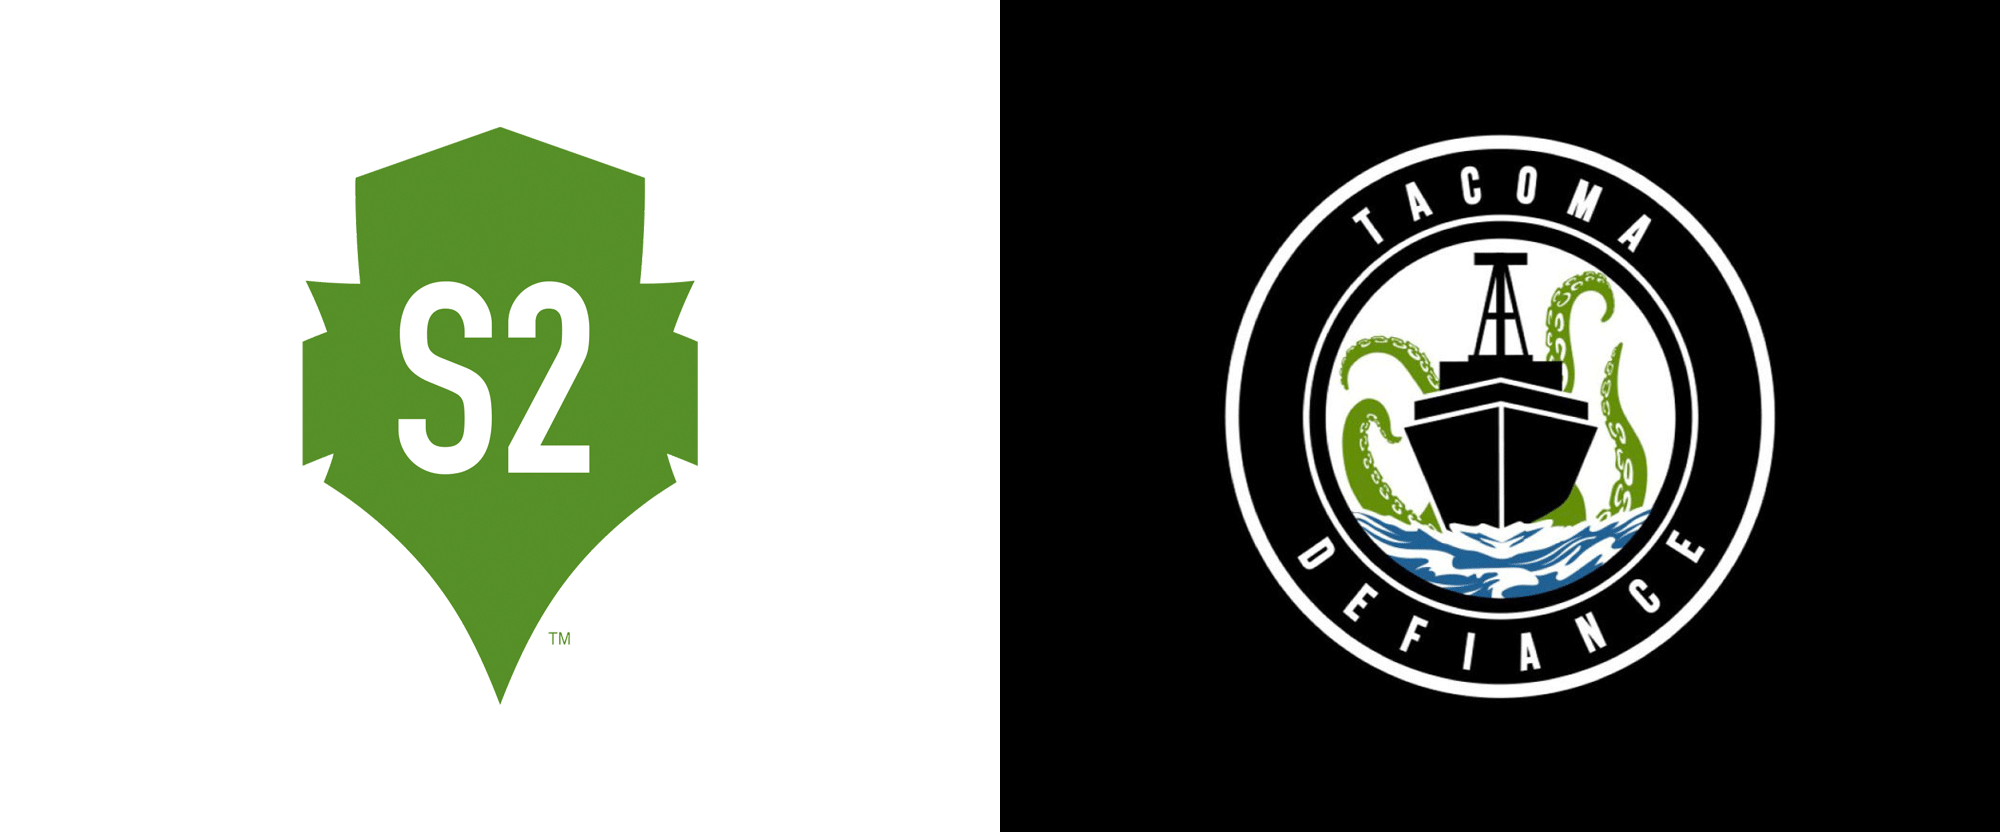 New Name and Logo for Tacoma Defiance